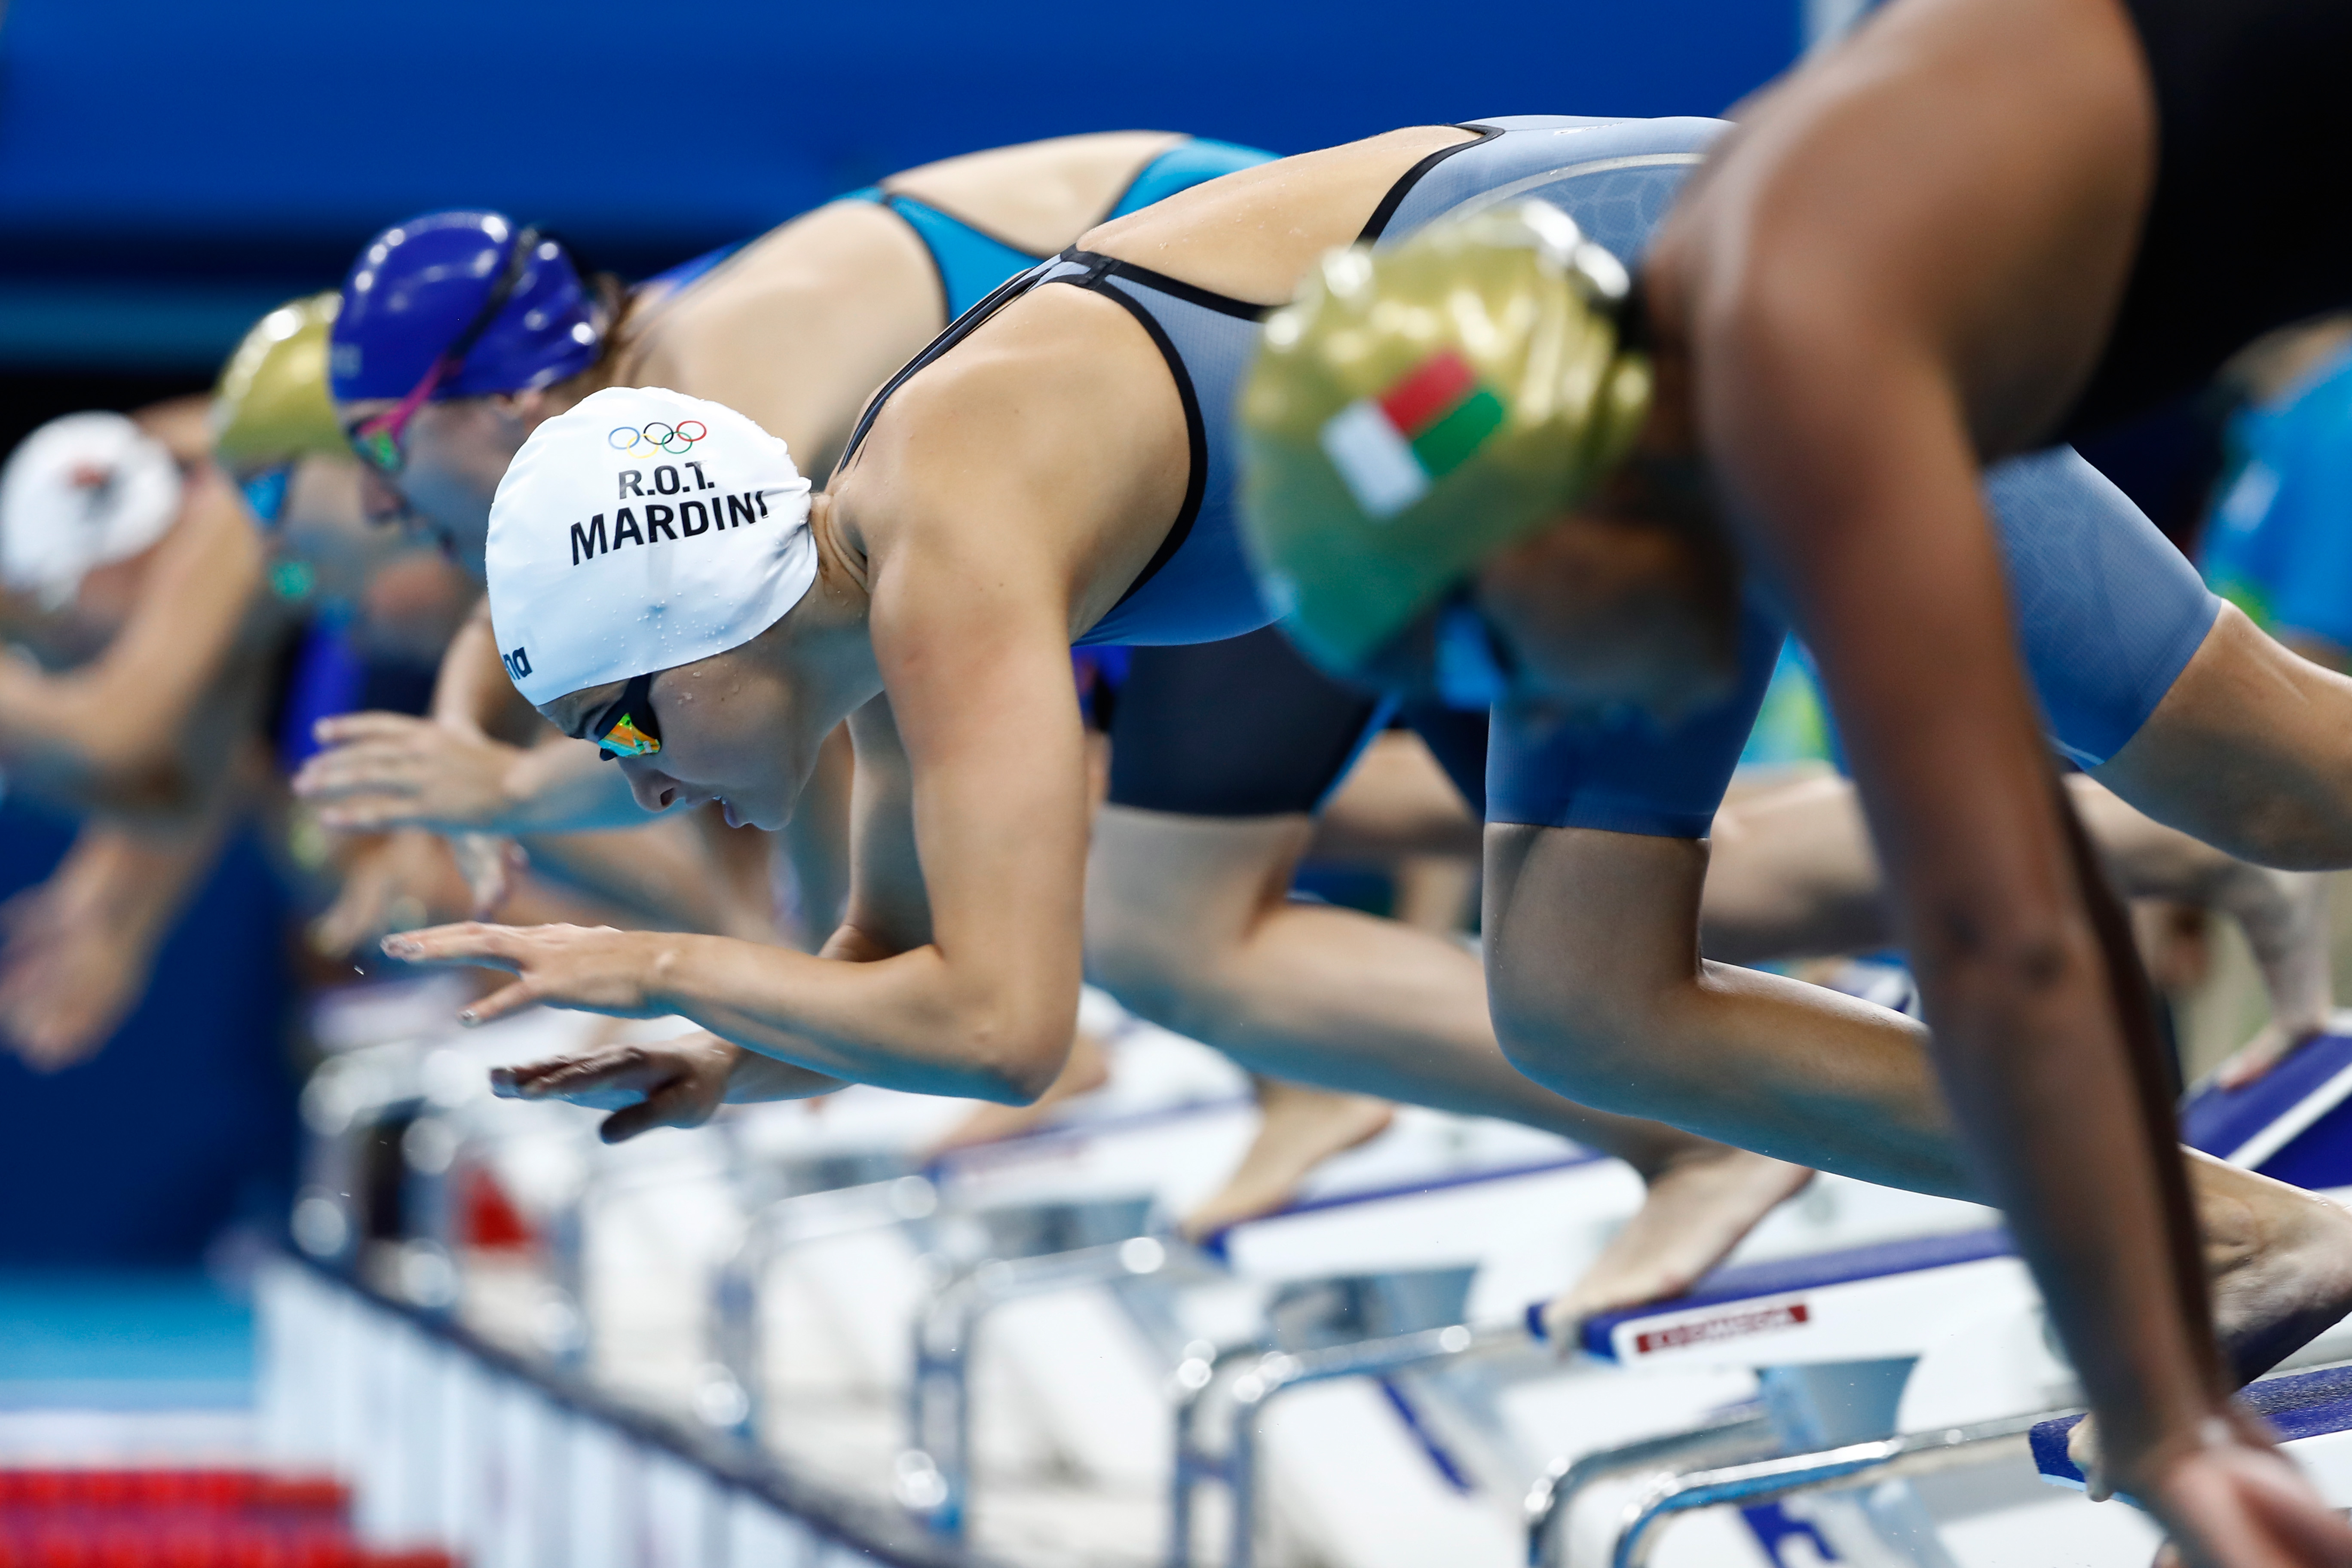 Olympic swimmer recalls having to literally swim for her life as a teenage refugee